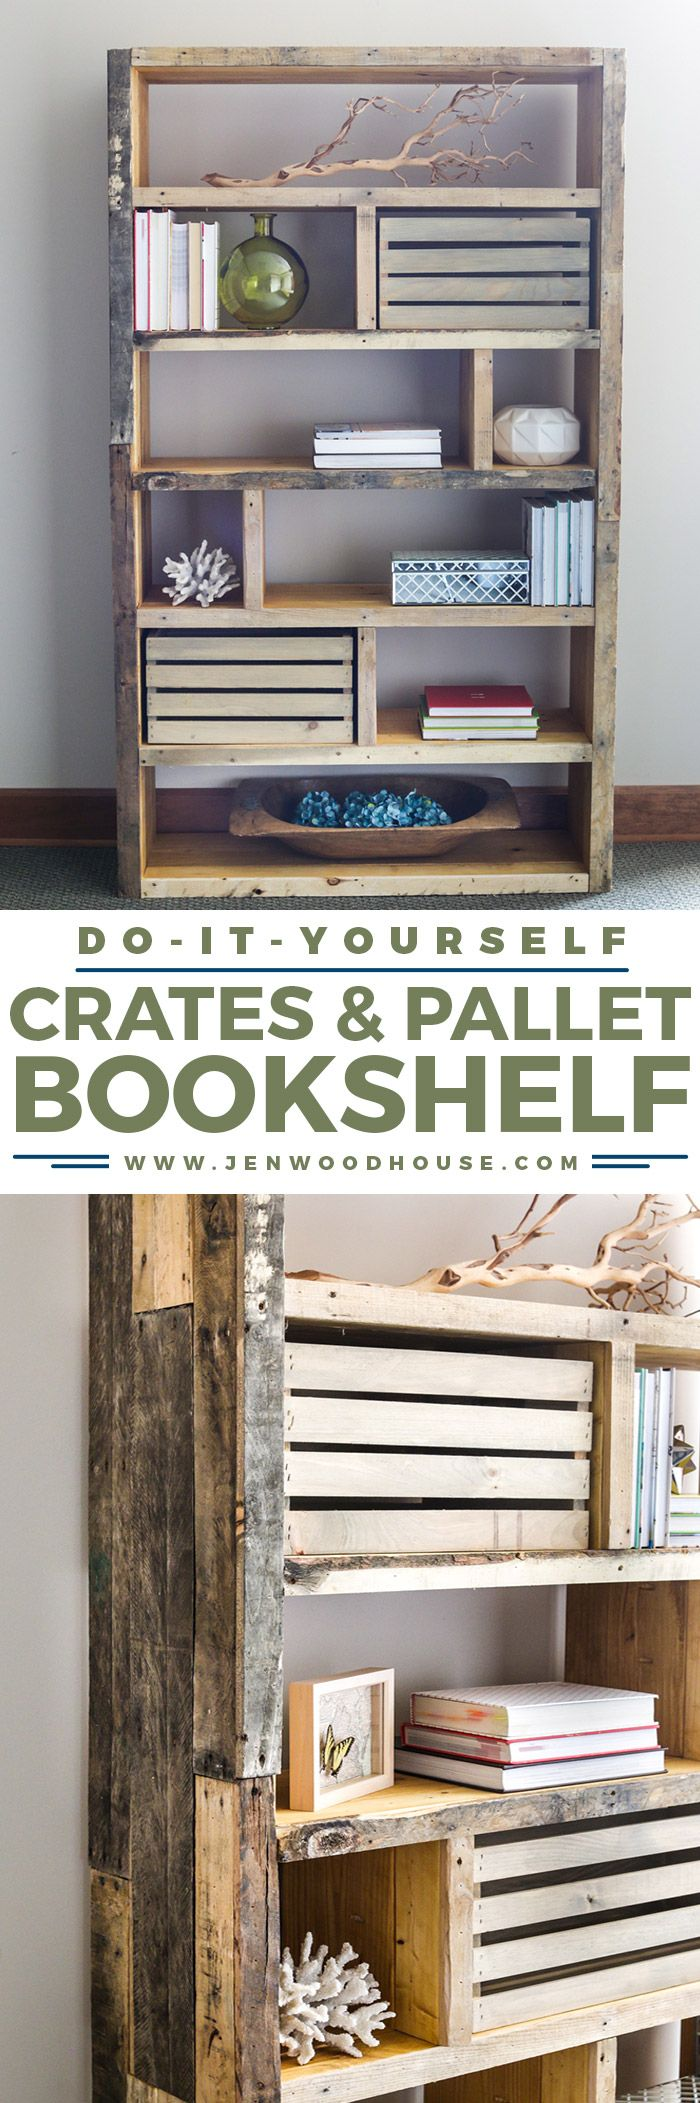 Build this beautiful and rustic bookshelf with reclaimed pallet wood and crates....